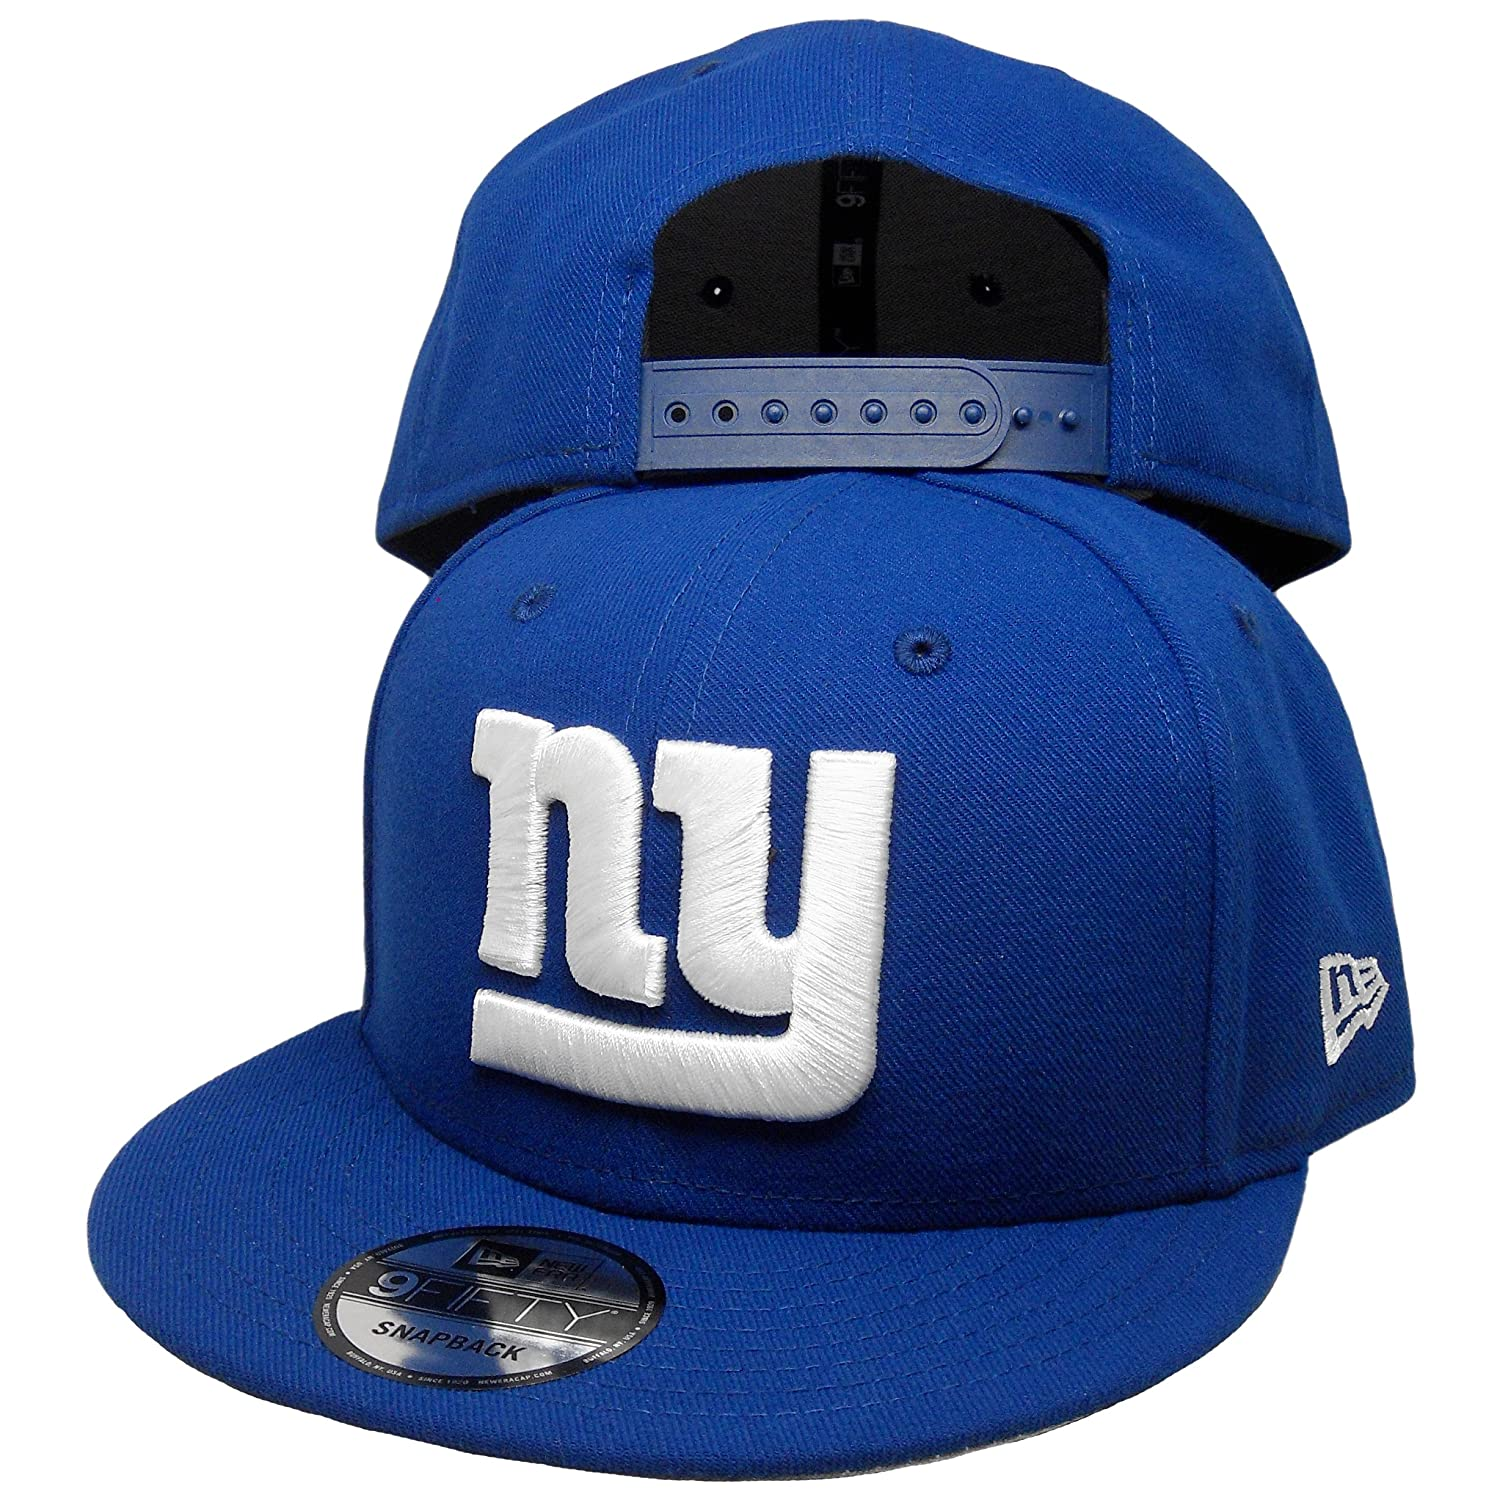 c8cdcaf2ec6c Amazon.com   New York Giants Custom New Era 9Fifty Snapback Hat to match  Air Jordan 18 Sport Royal   Sports   Outdoors